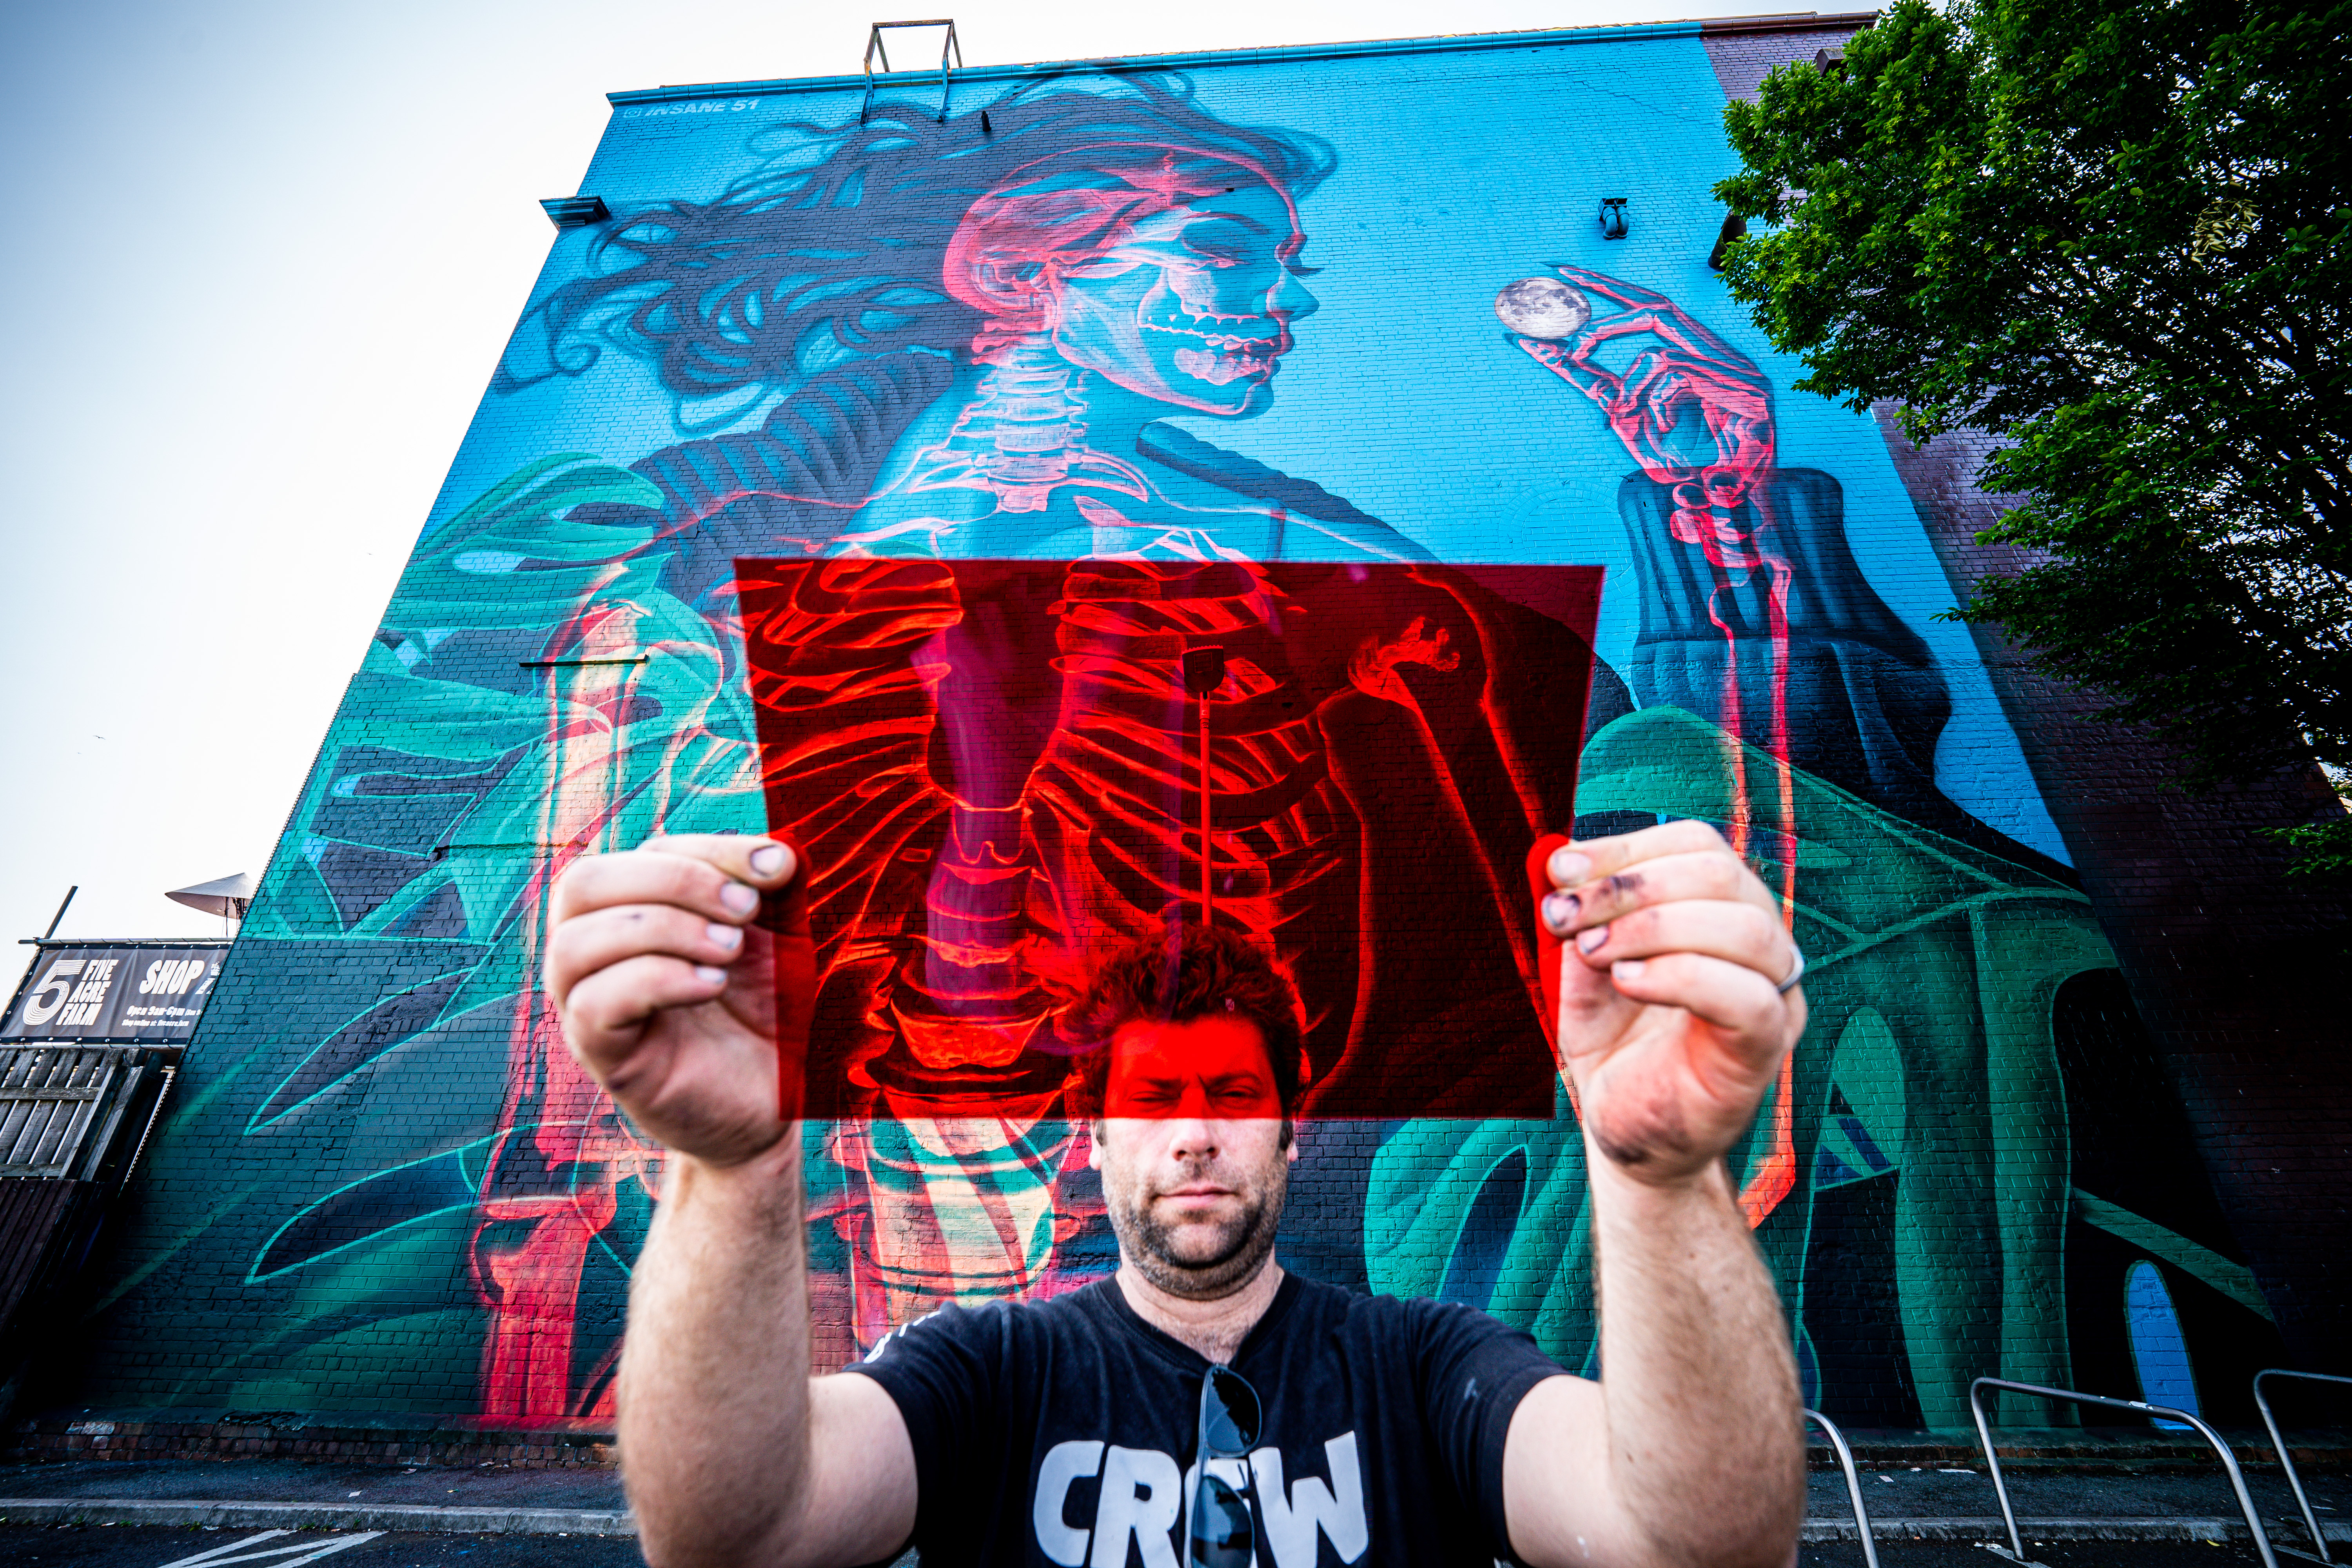 <p>Organiser of 'Upfest' Steve Hayles holds a red filter gel beside a graffiti piece by artist Insane 51, which is an interactive piece and can be viewed differently through either a blue or a red filter, like the ones in 3D glasses, revealing a woman or the skeleton within her body, on a huge wall in Bedminster, Bristol, as the 75 murals project reaches the halfway point and various graffiti pieces are sprayed onto walls and buildings across the city over the Summer. Picture date: Wednesday July 21, 2021.</p>